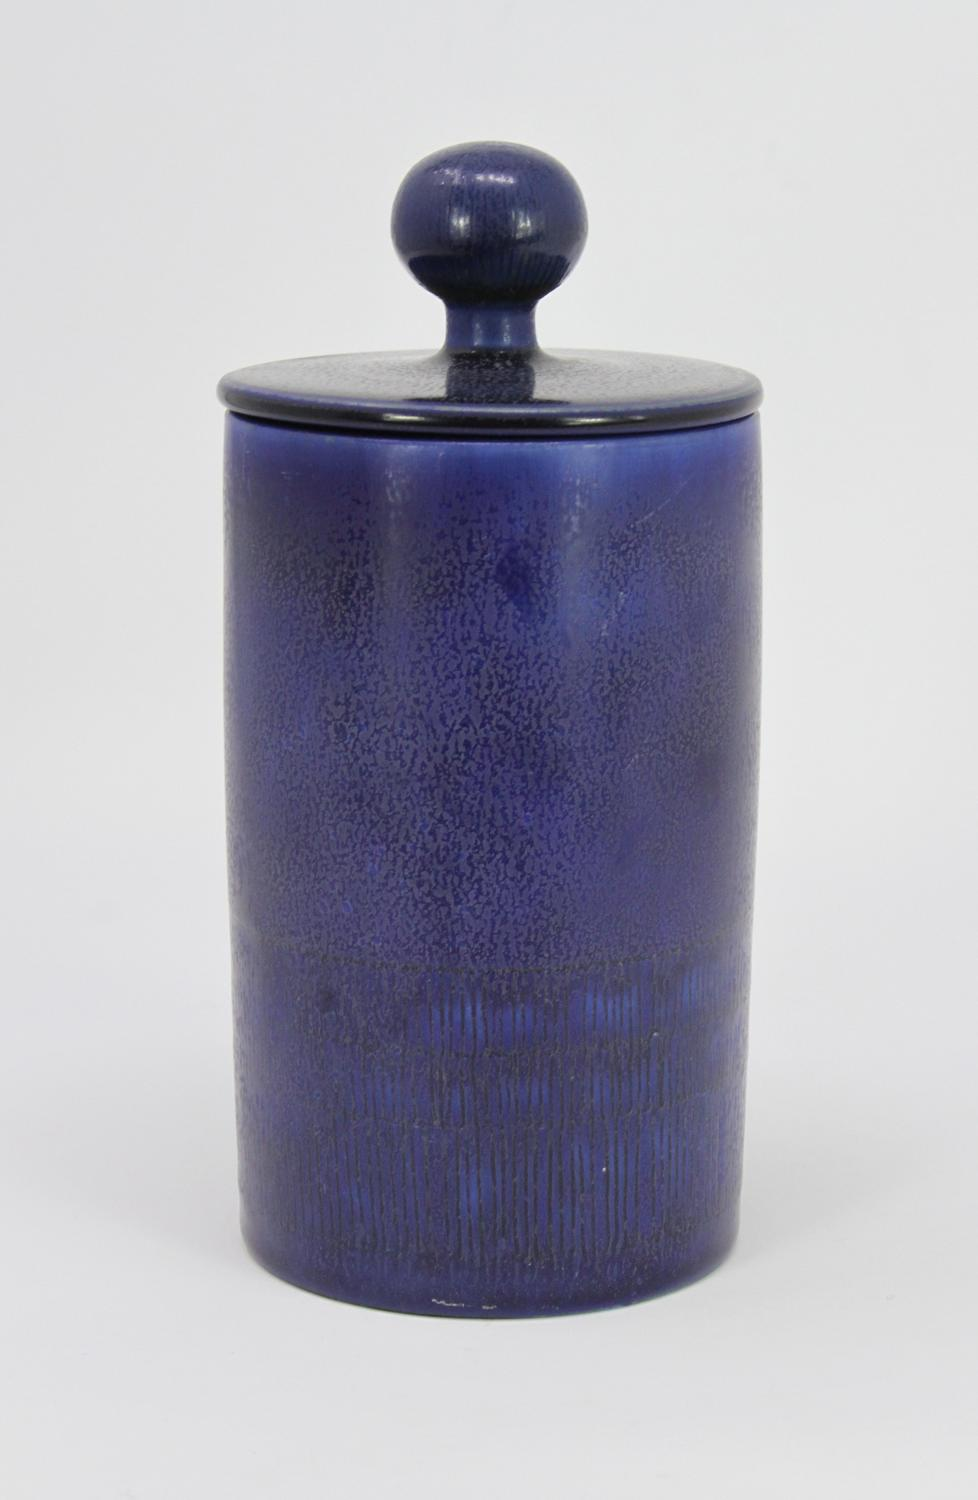 Hertha Bengtson Unique lidded pot Rorstrand Sweden 1959